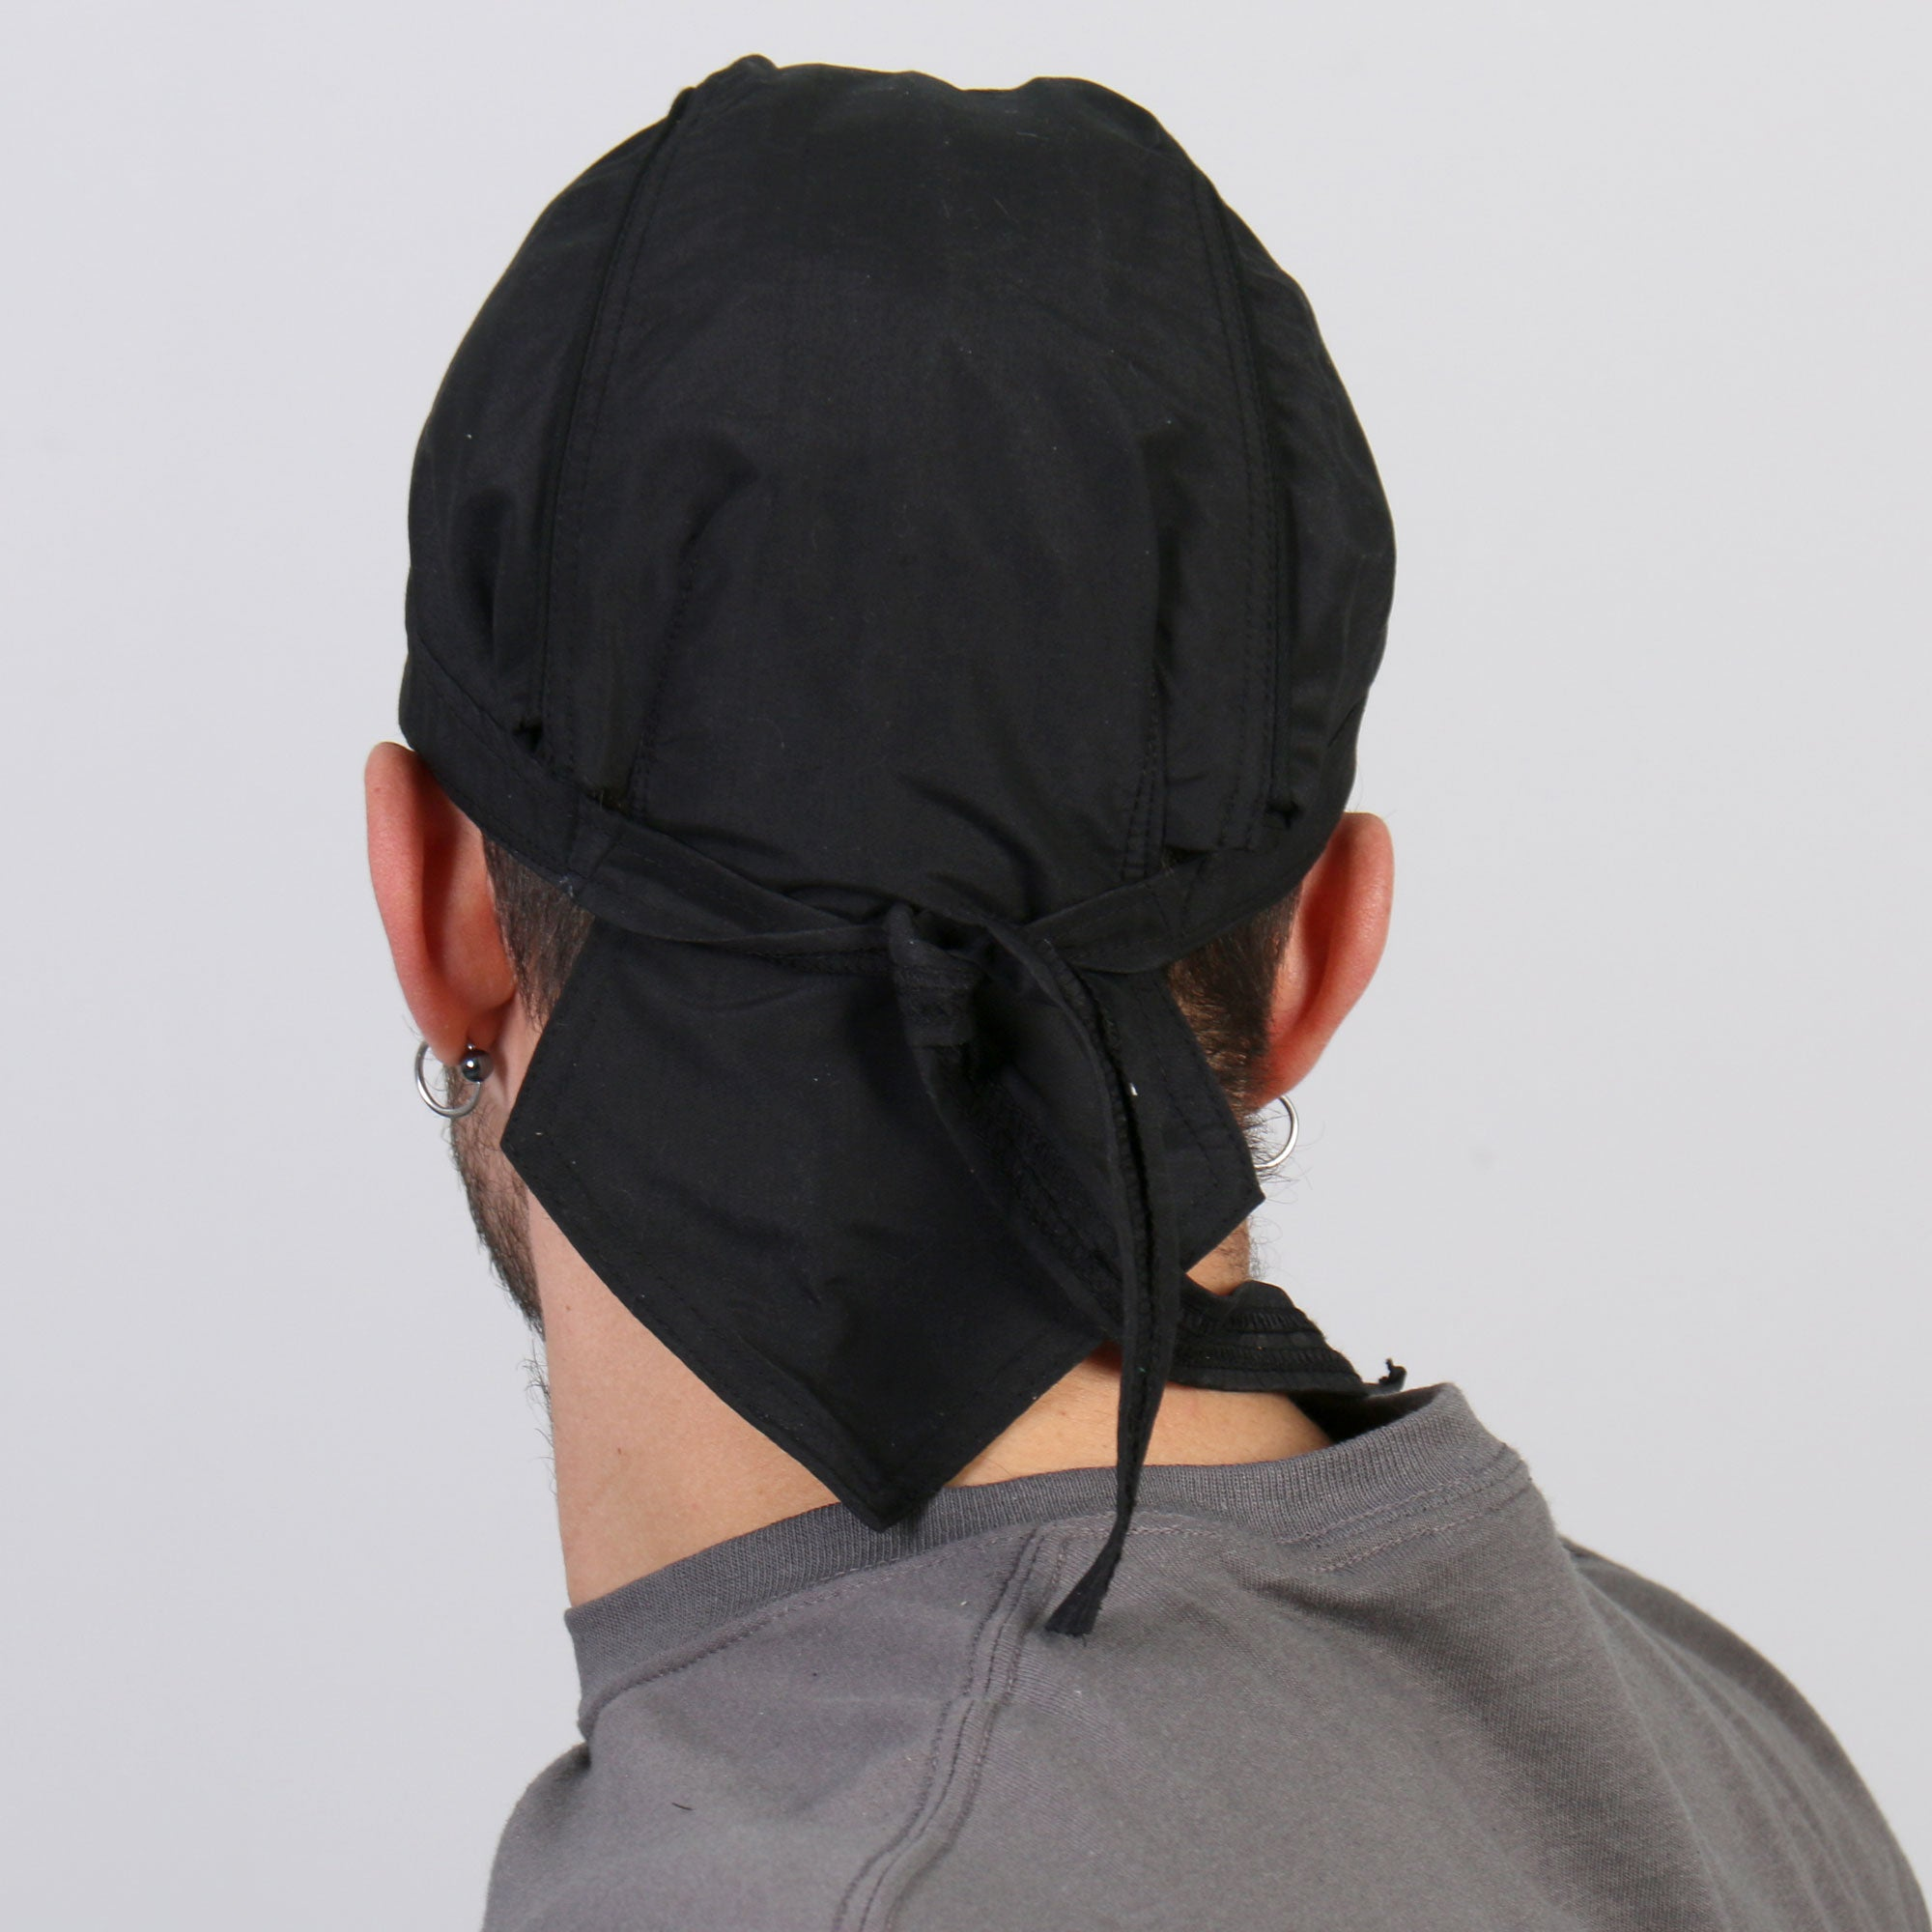 Hot Leathers Classic Black Premium Headwrap